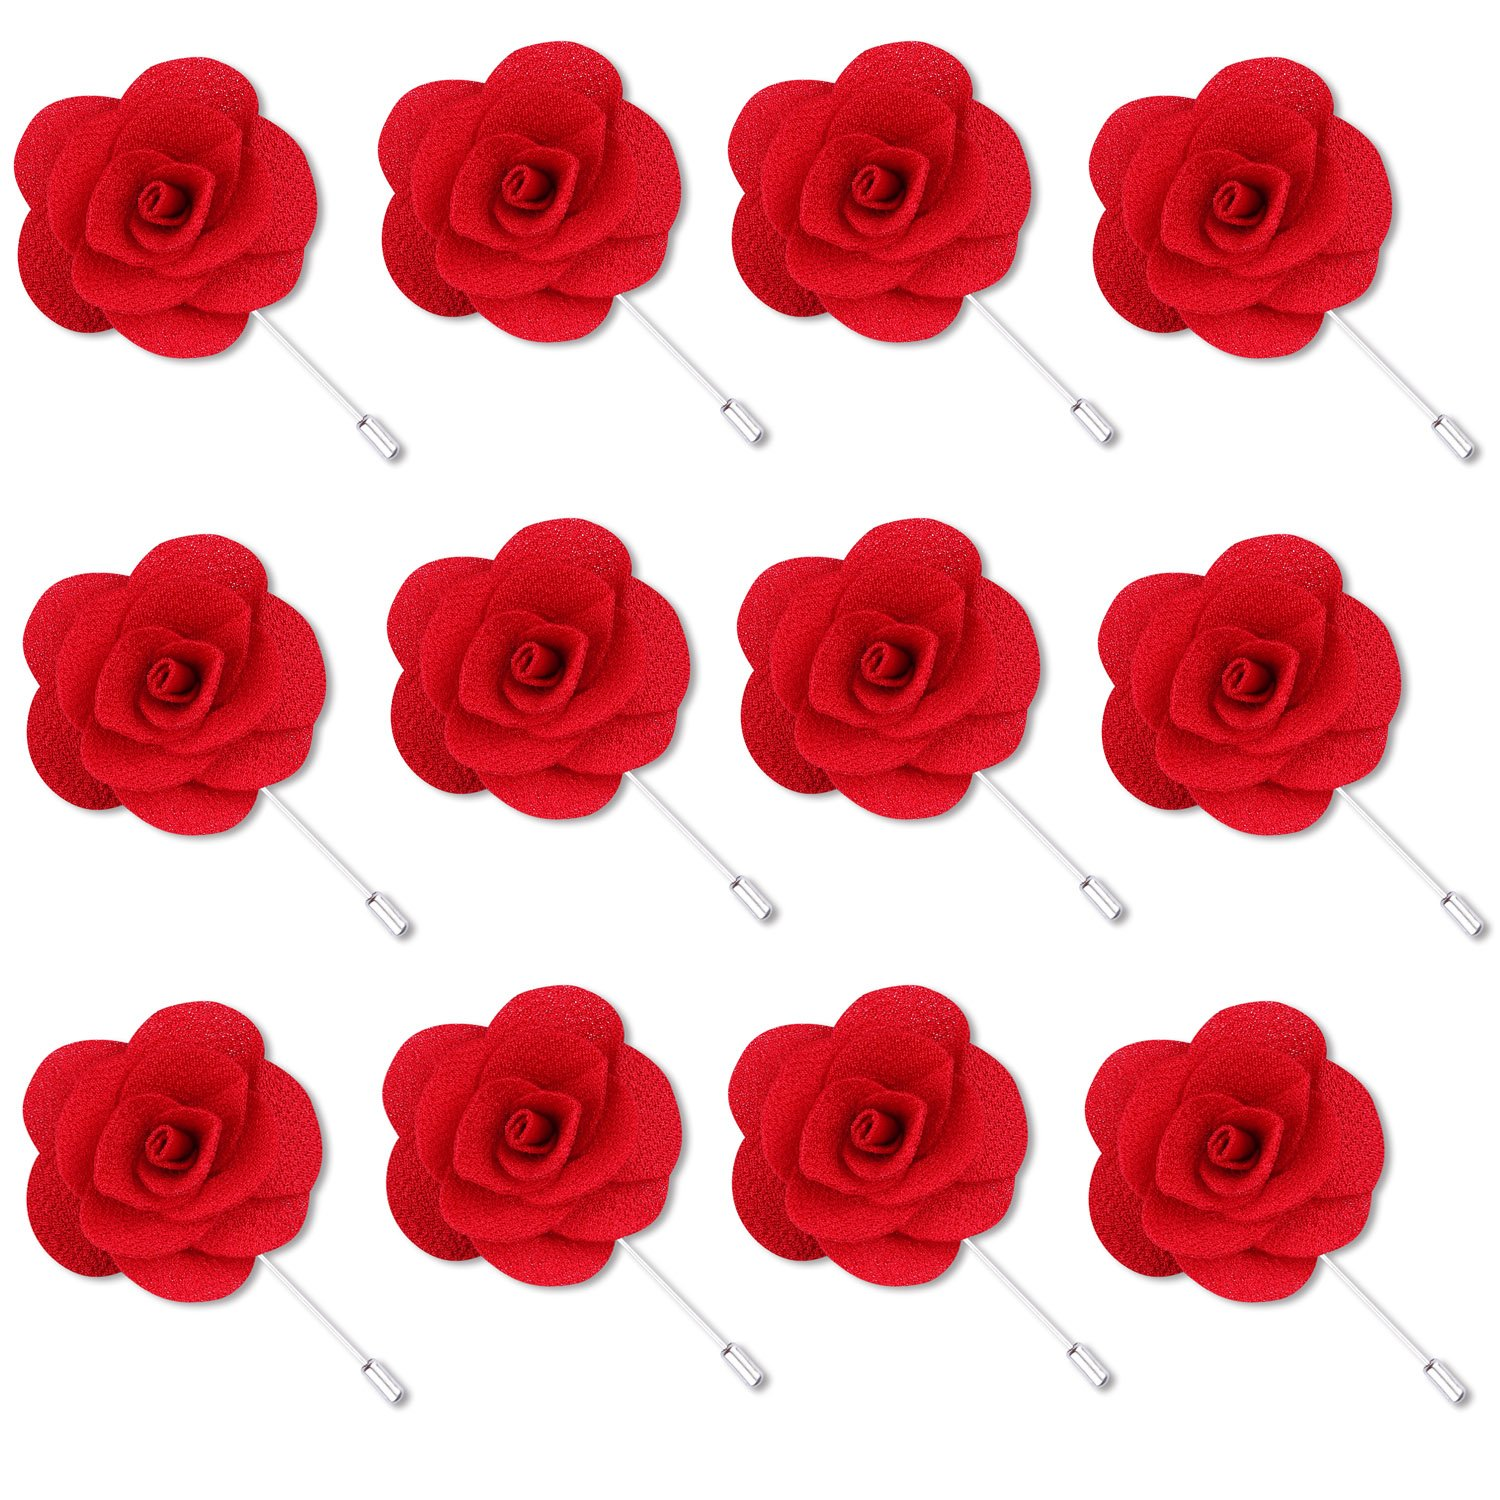 Rhungift Flower Pins, Handmade Camellia Flower Boutonniere for Men Women Suit (Pack of 12) (Red)